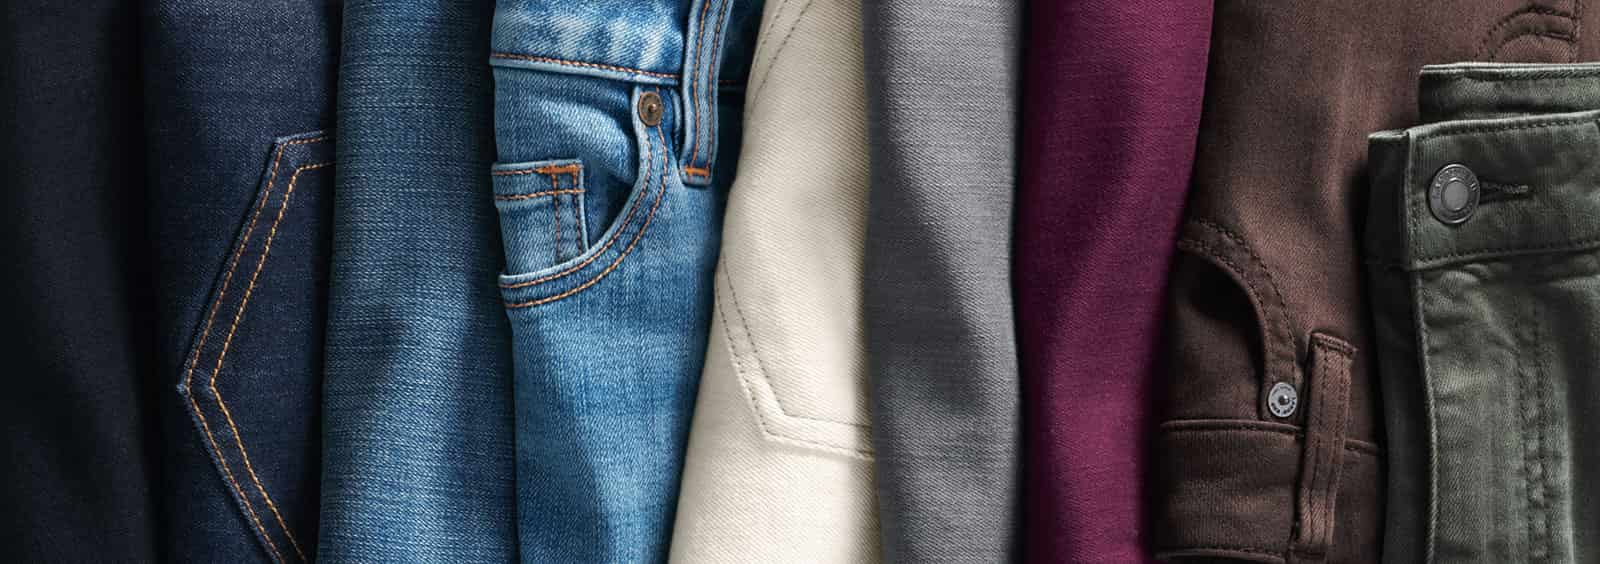 Why I Love My Boot Cut Jeans